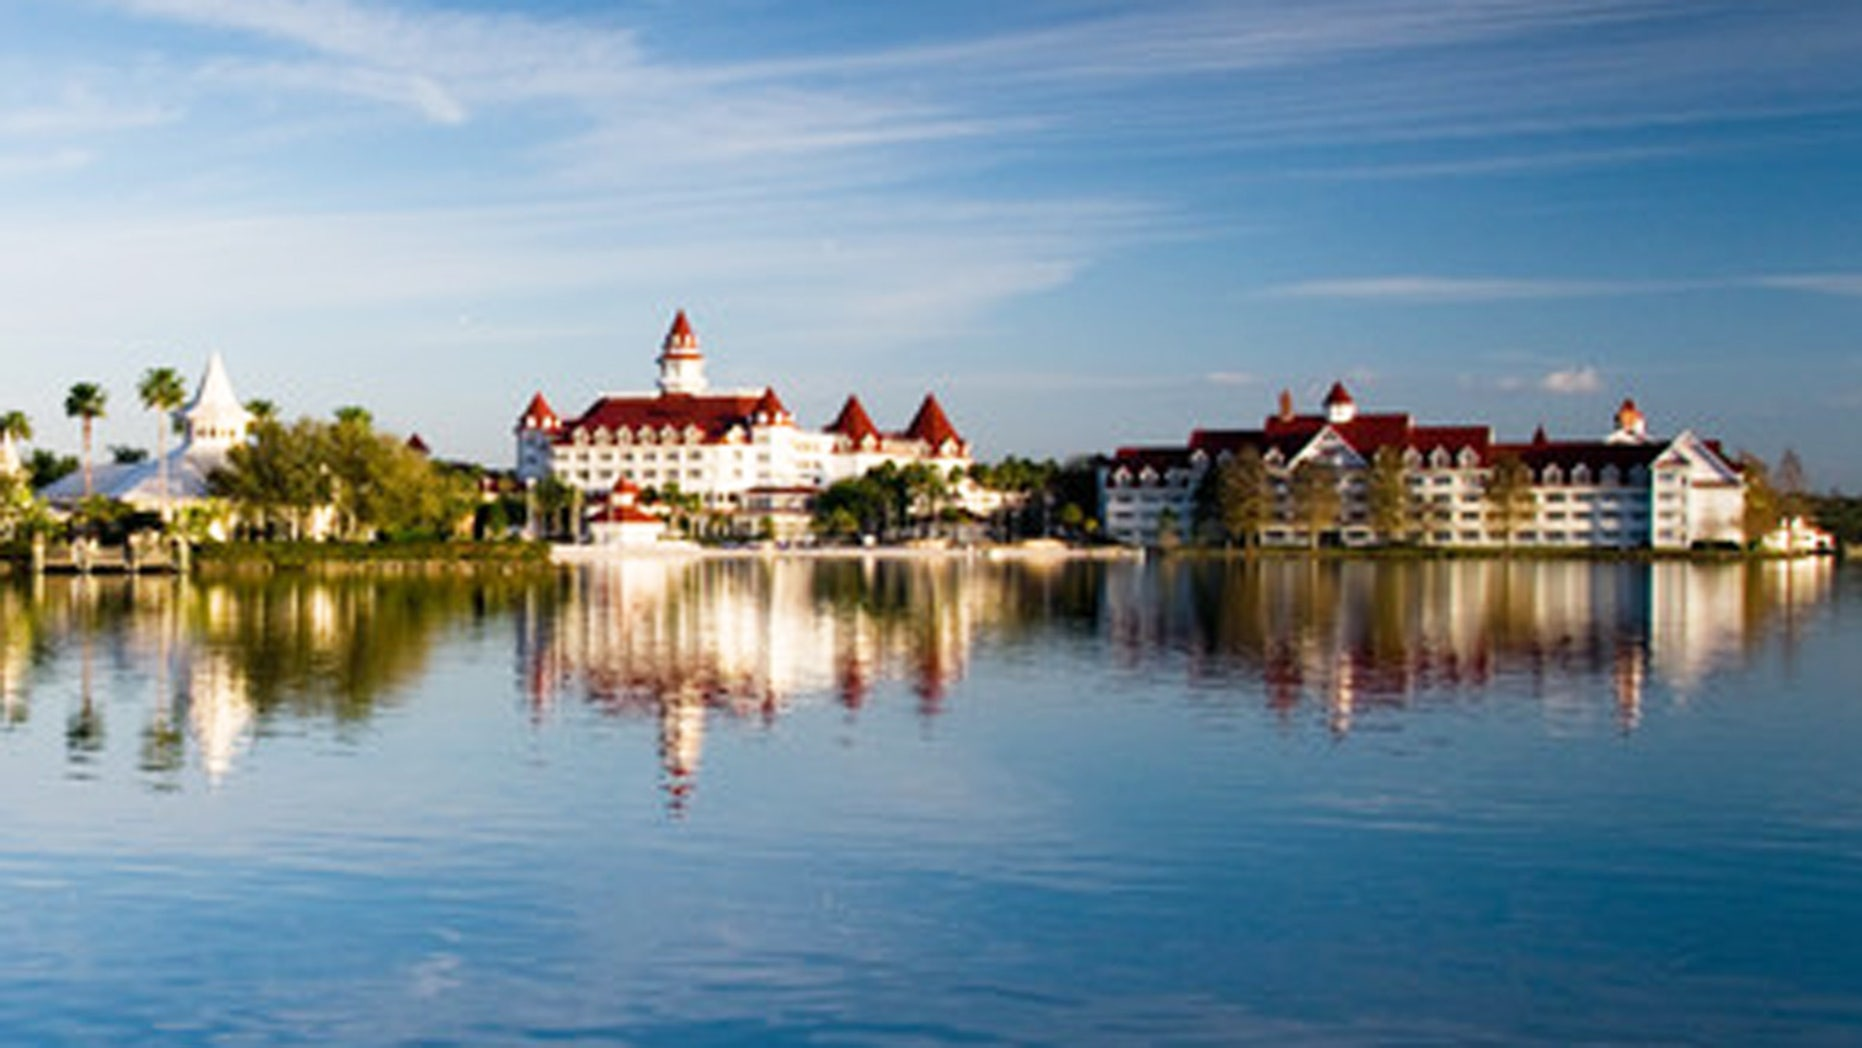 In June, 2-year-old Lane Graves was dragged into a lagoon by an alligator on the Grand Floridian Resort property.